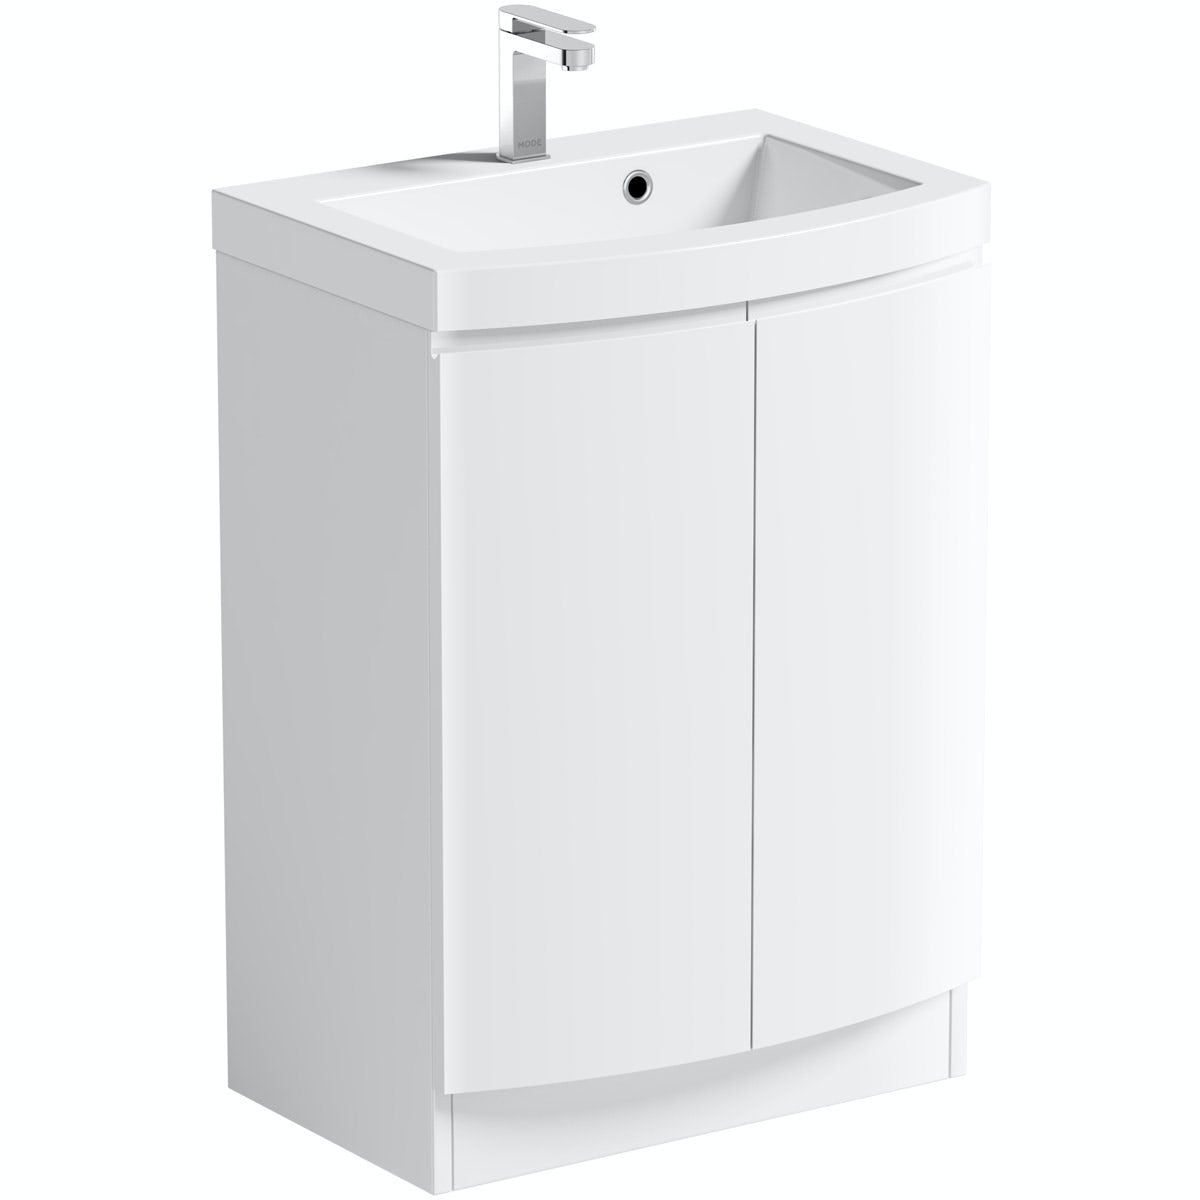 Mode Harrison snow floor standing door unit and basin 600mm